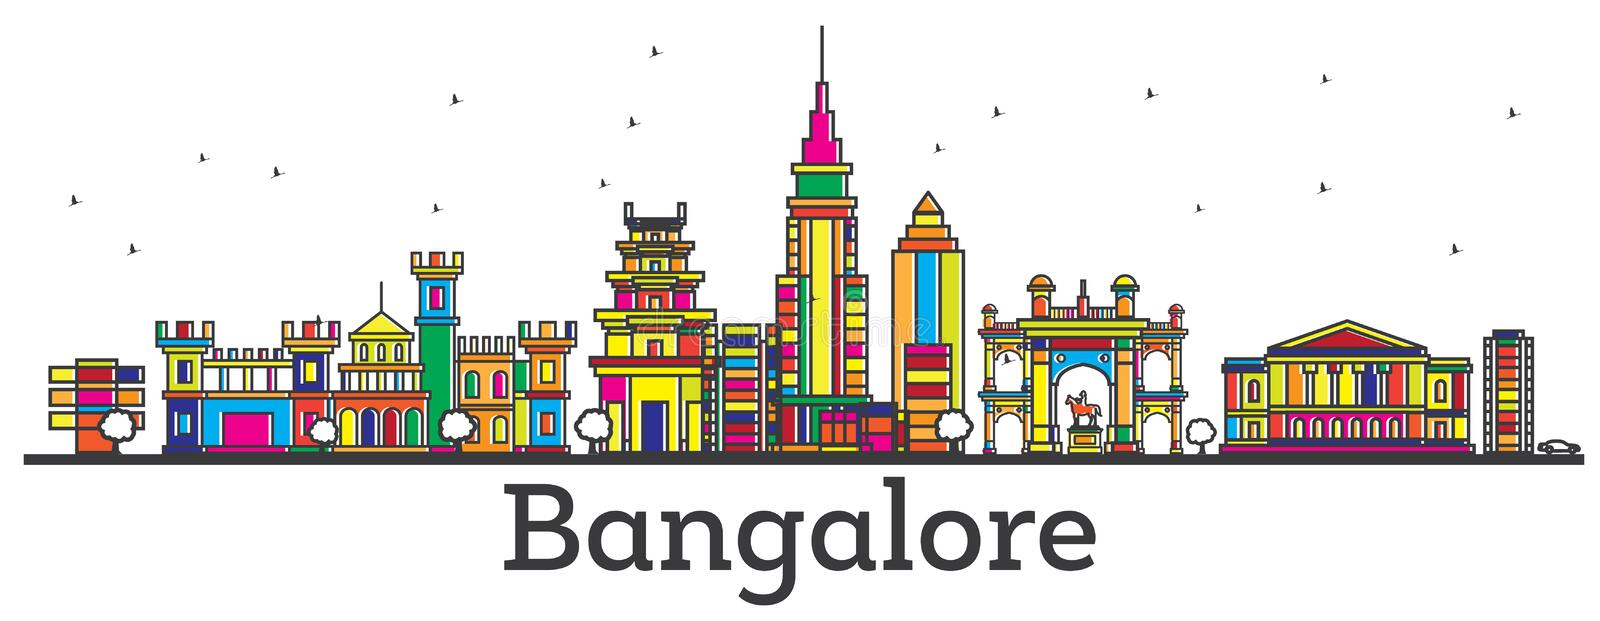 Outline Bangalore India City Skyline with Color Buildings Isolated on White. Vector Illustration. Bangalore Cityscape with Landmarks vector illustration